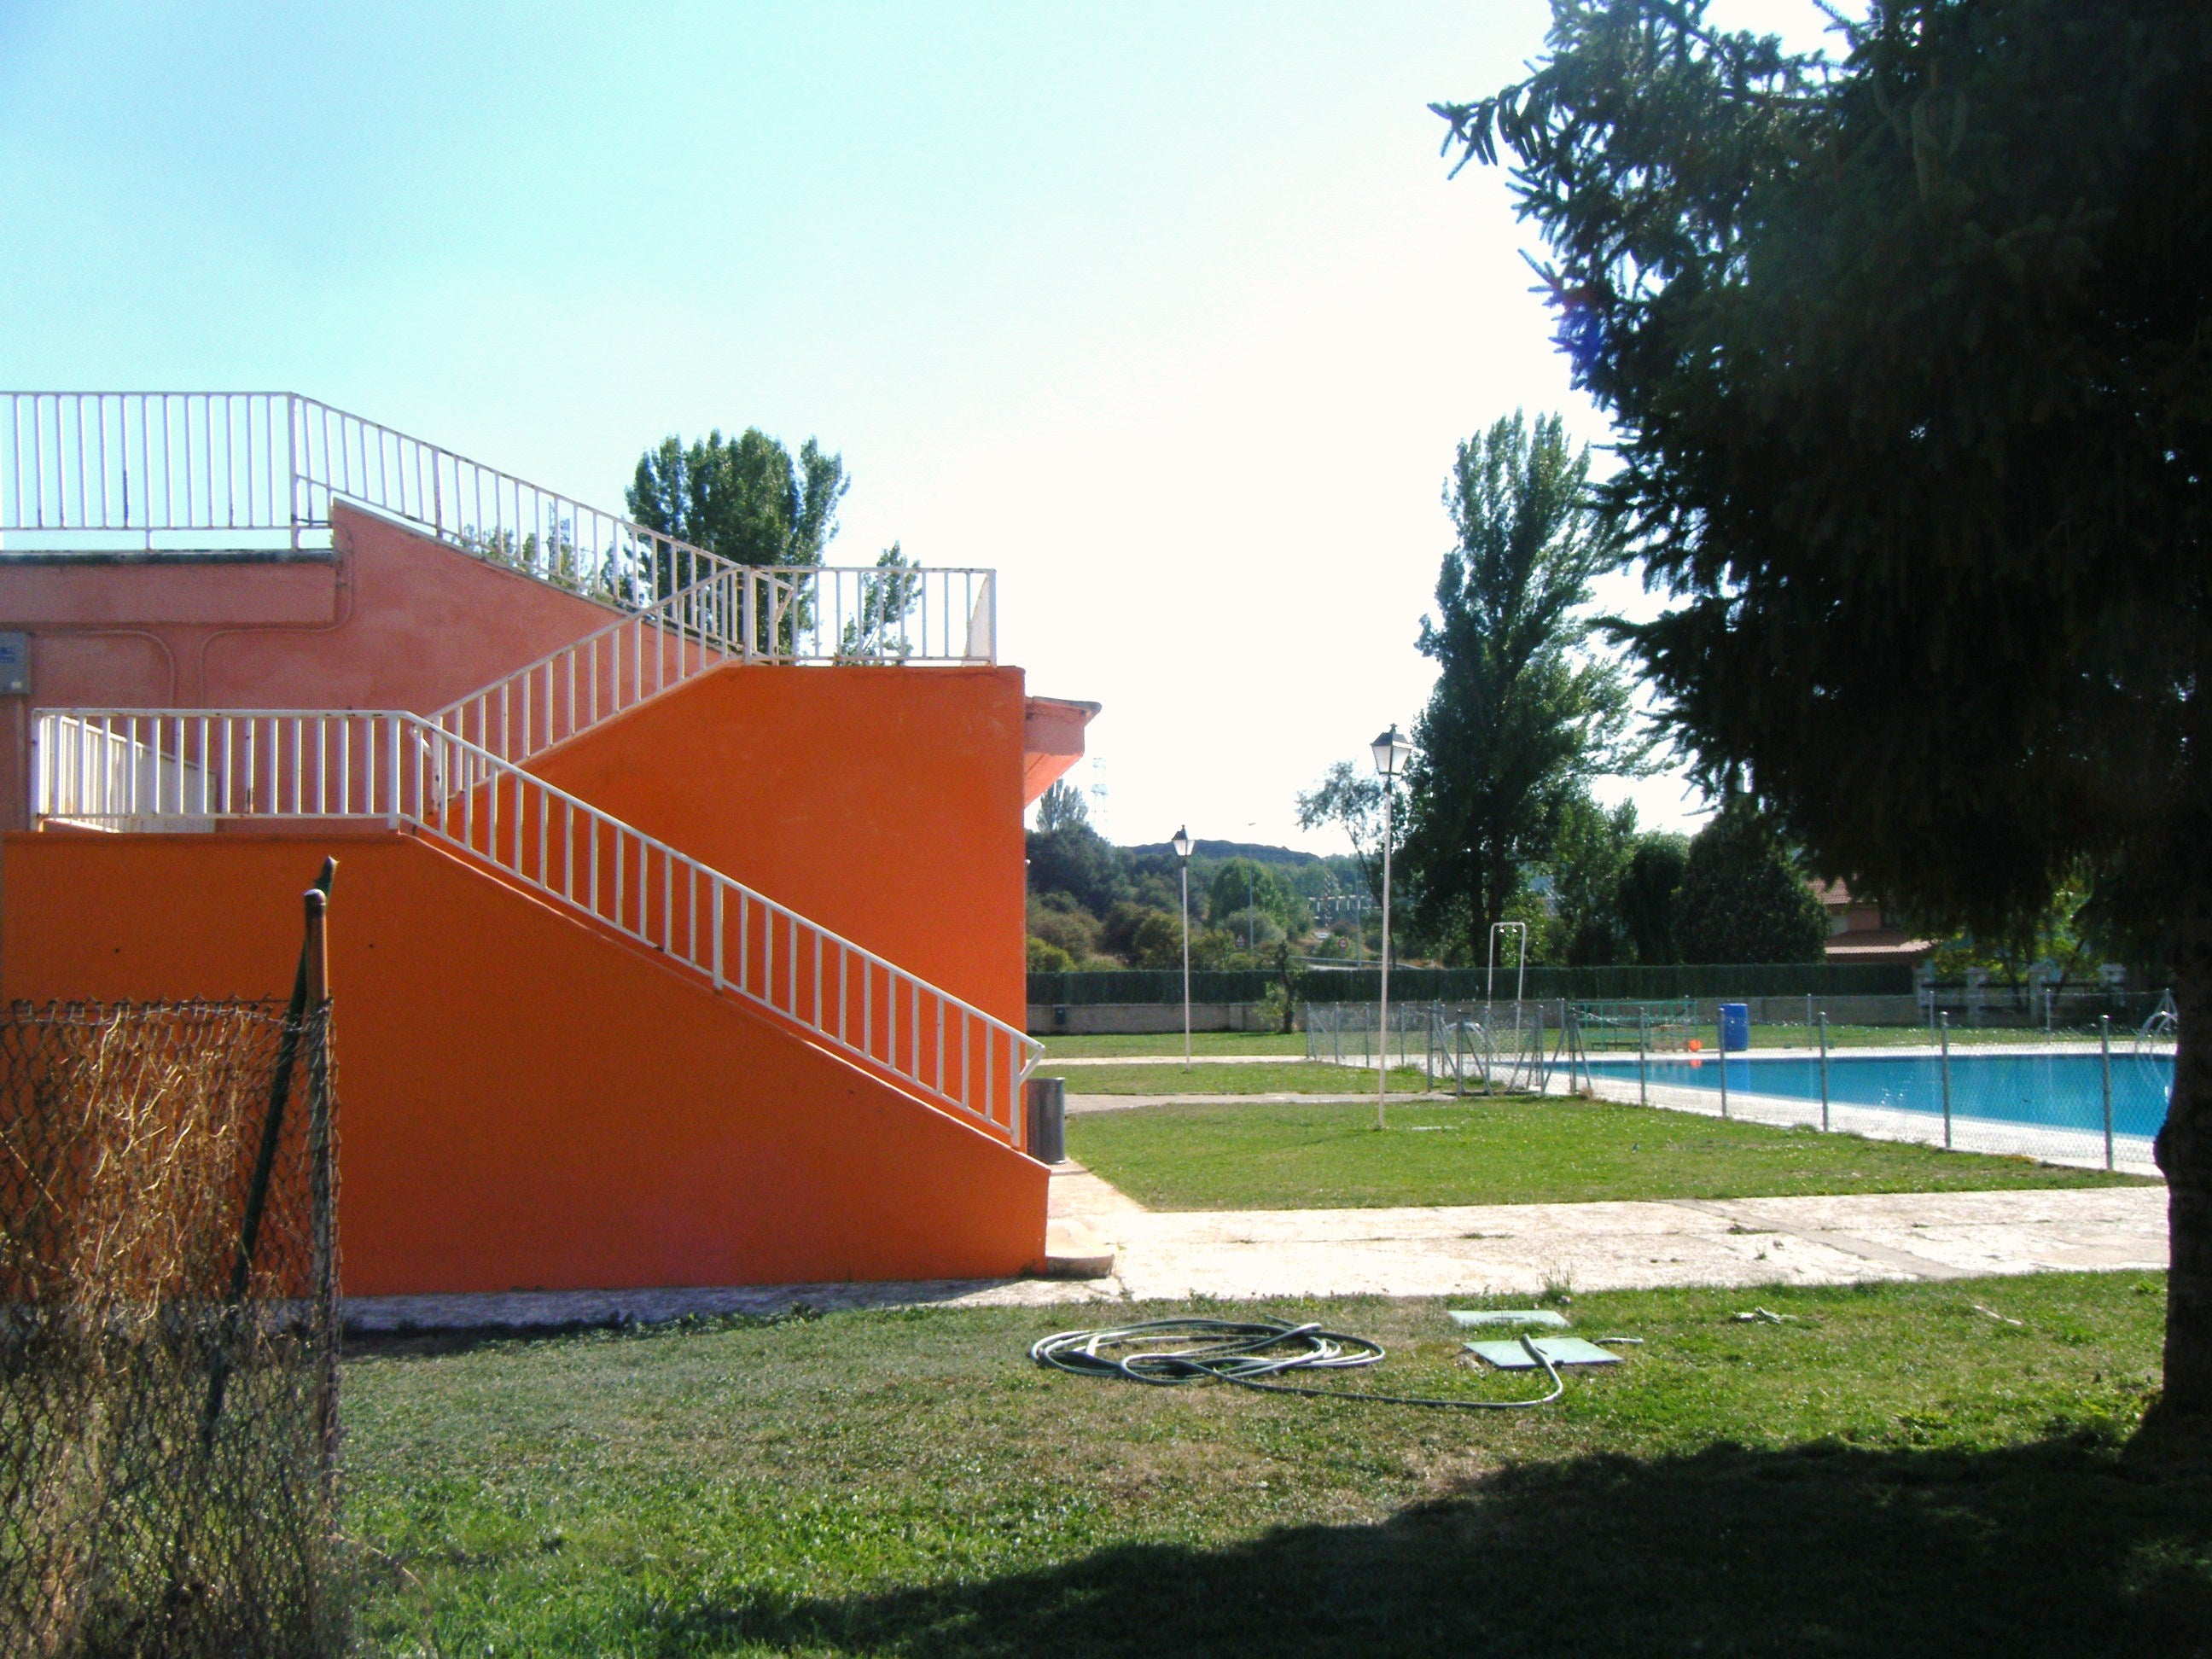 Sports Centre and Public swimming pool